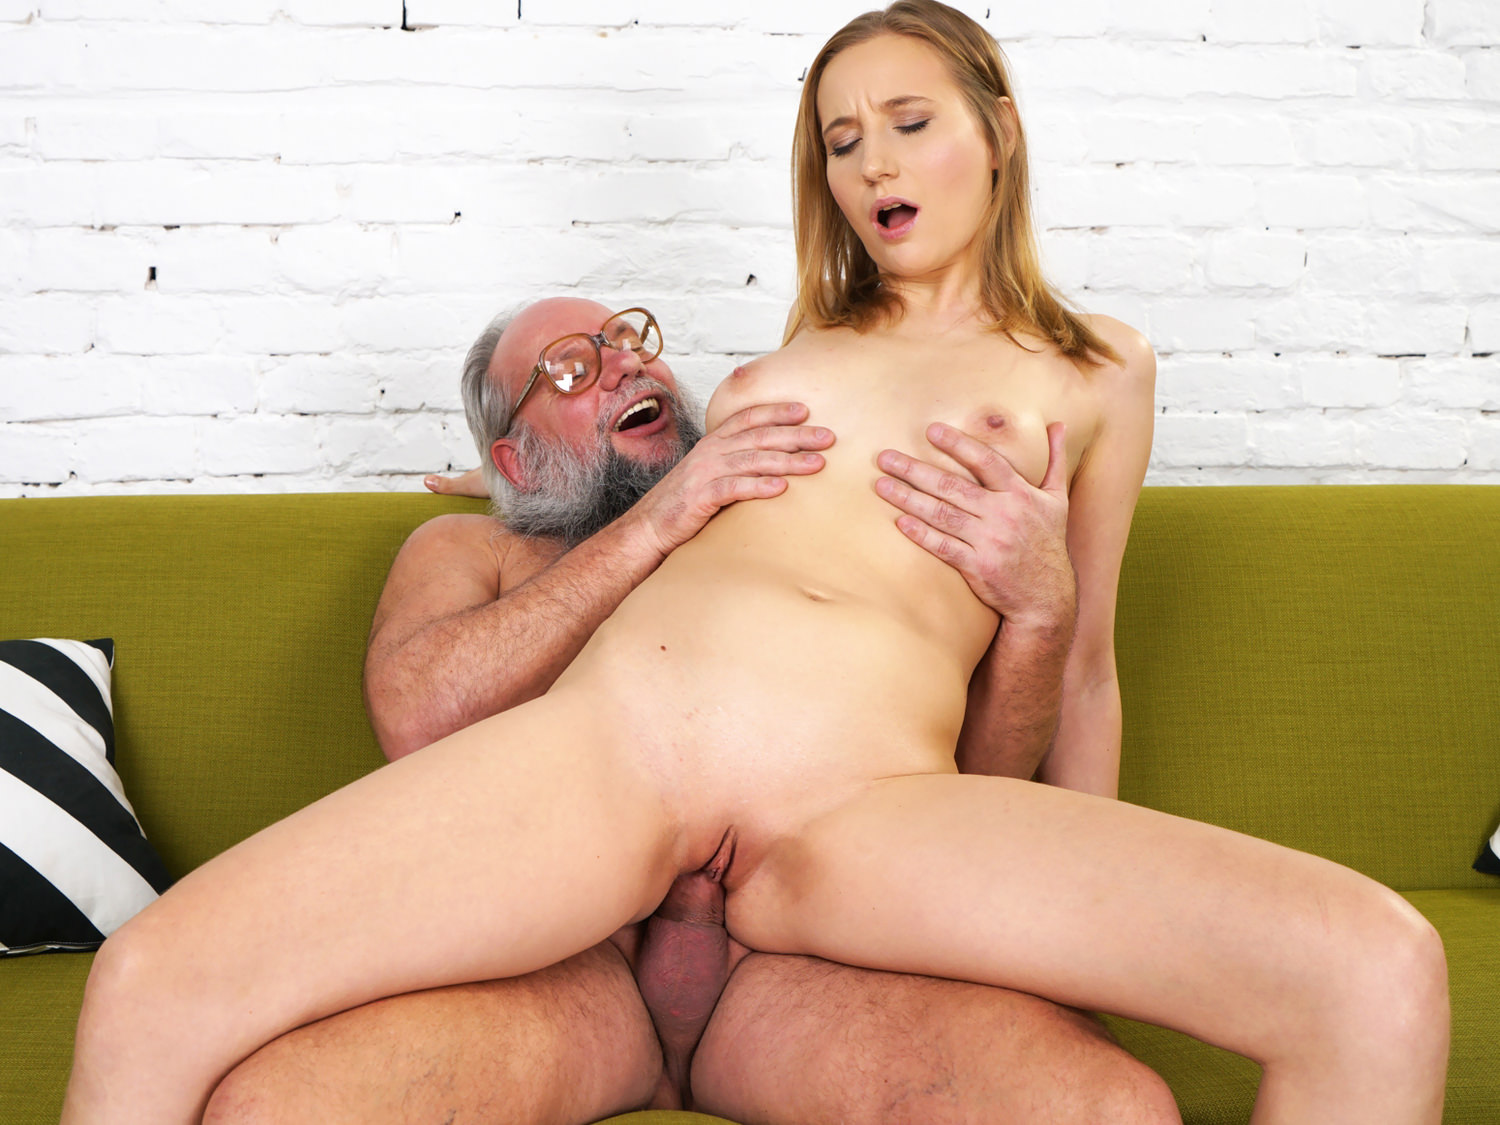 Woodman casting x young girl auditioning for the casting hard sex dominance cumshot, sexmonitor